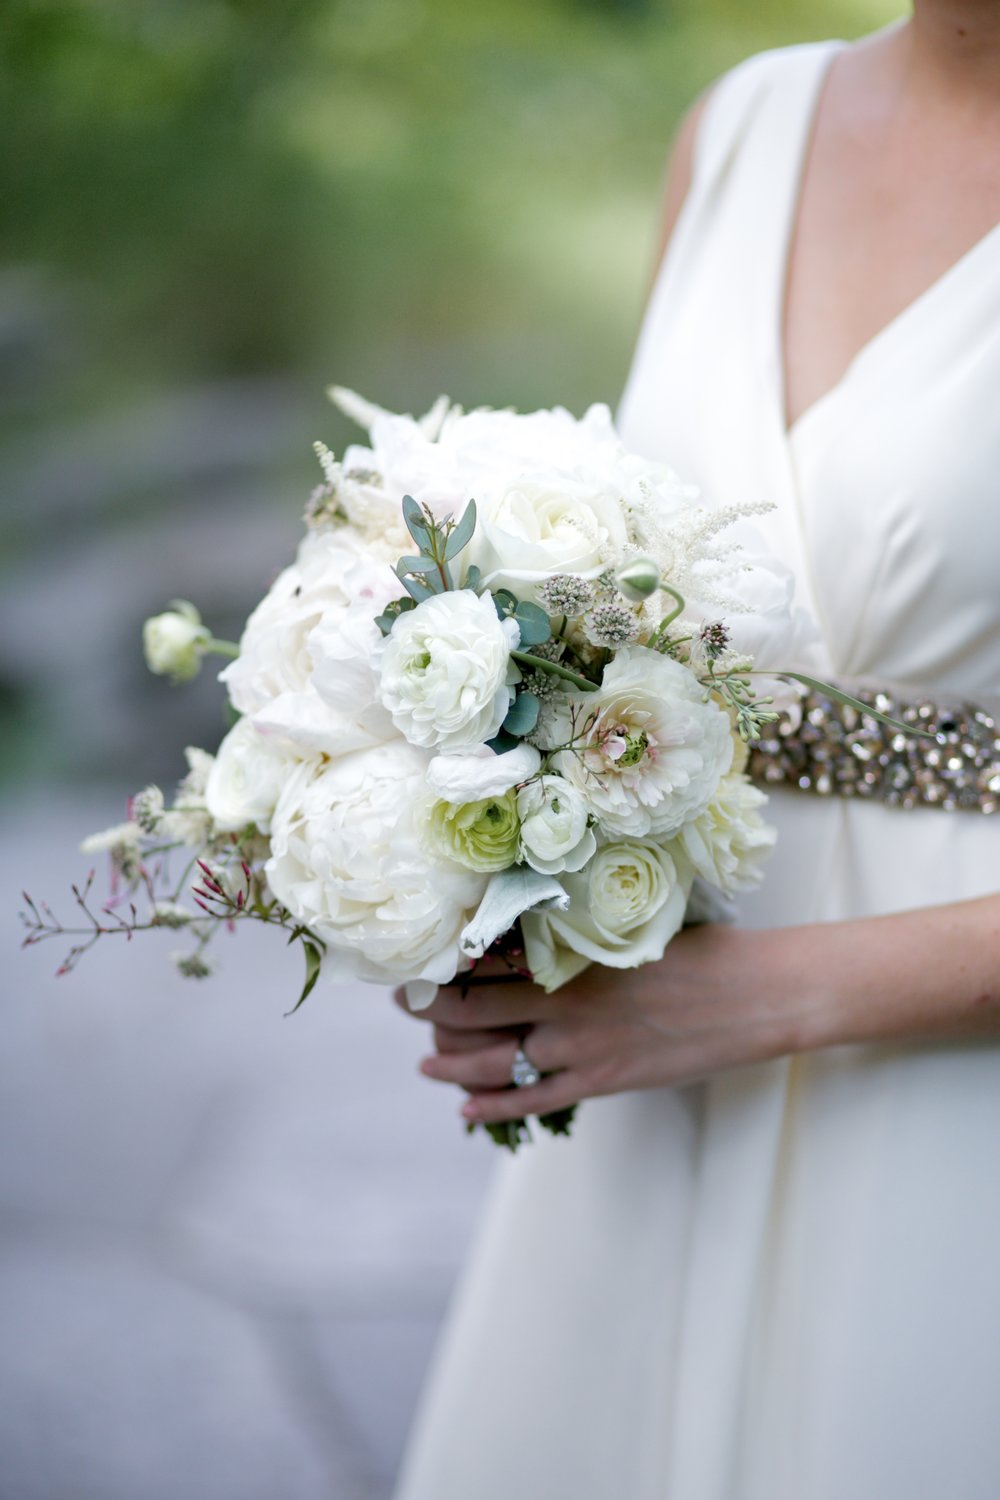 Tailored and romantic wedding bouquet with peonies and ranunculus, designed by Fleur Inc.  Photographed by Jaclyn Simpson Photography at the Peggy Notebaert Nature Museum